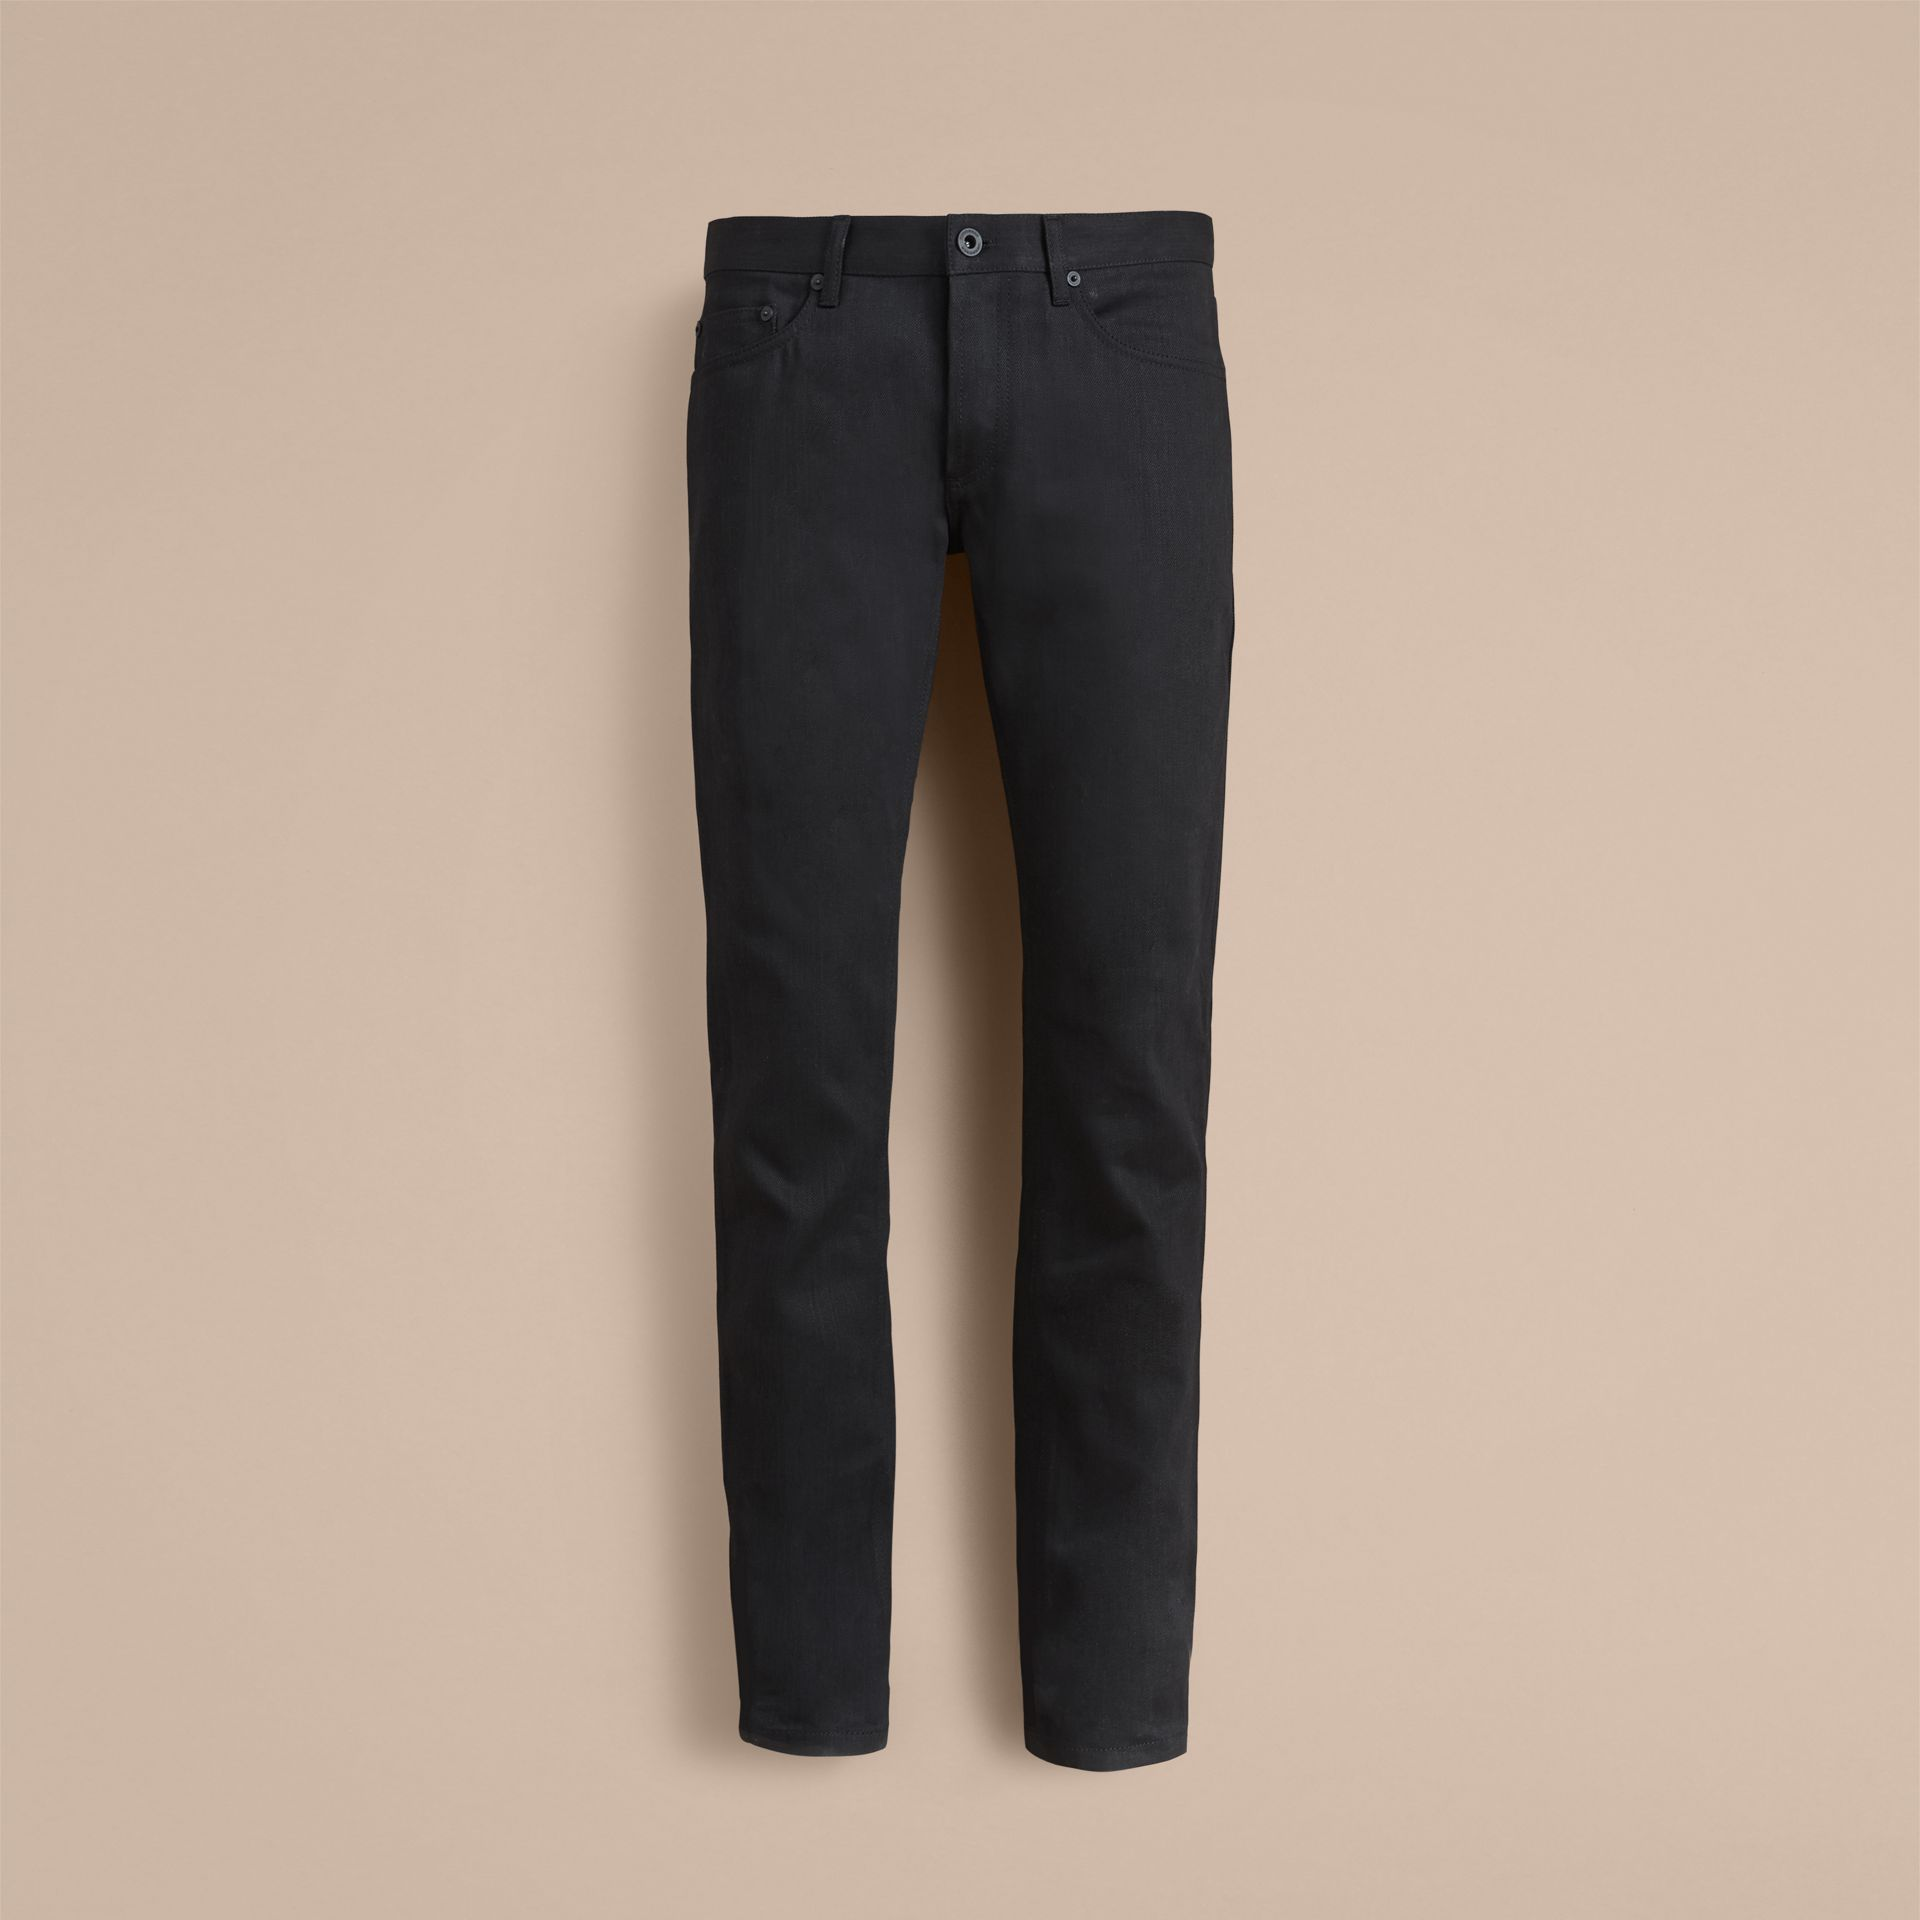 Slim Fit Japanese Denim Jeans in Black - Men | Burberry - gallery image 3